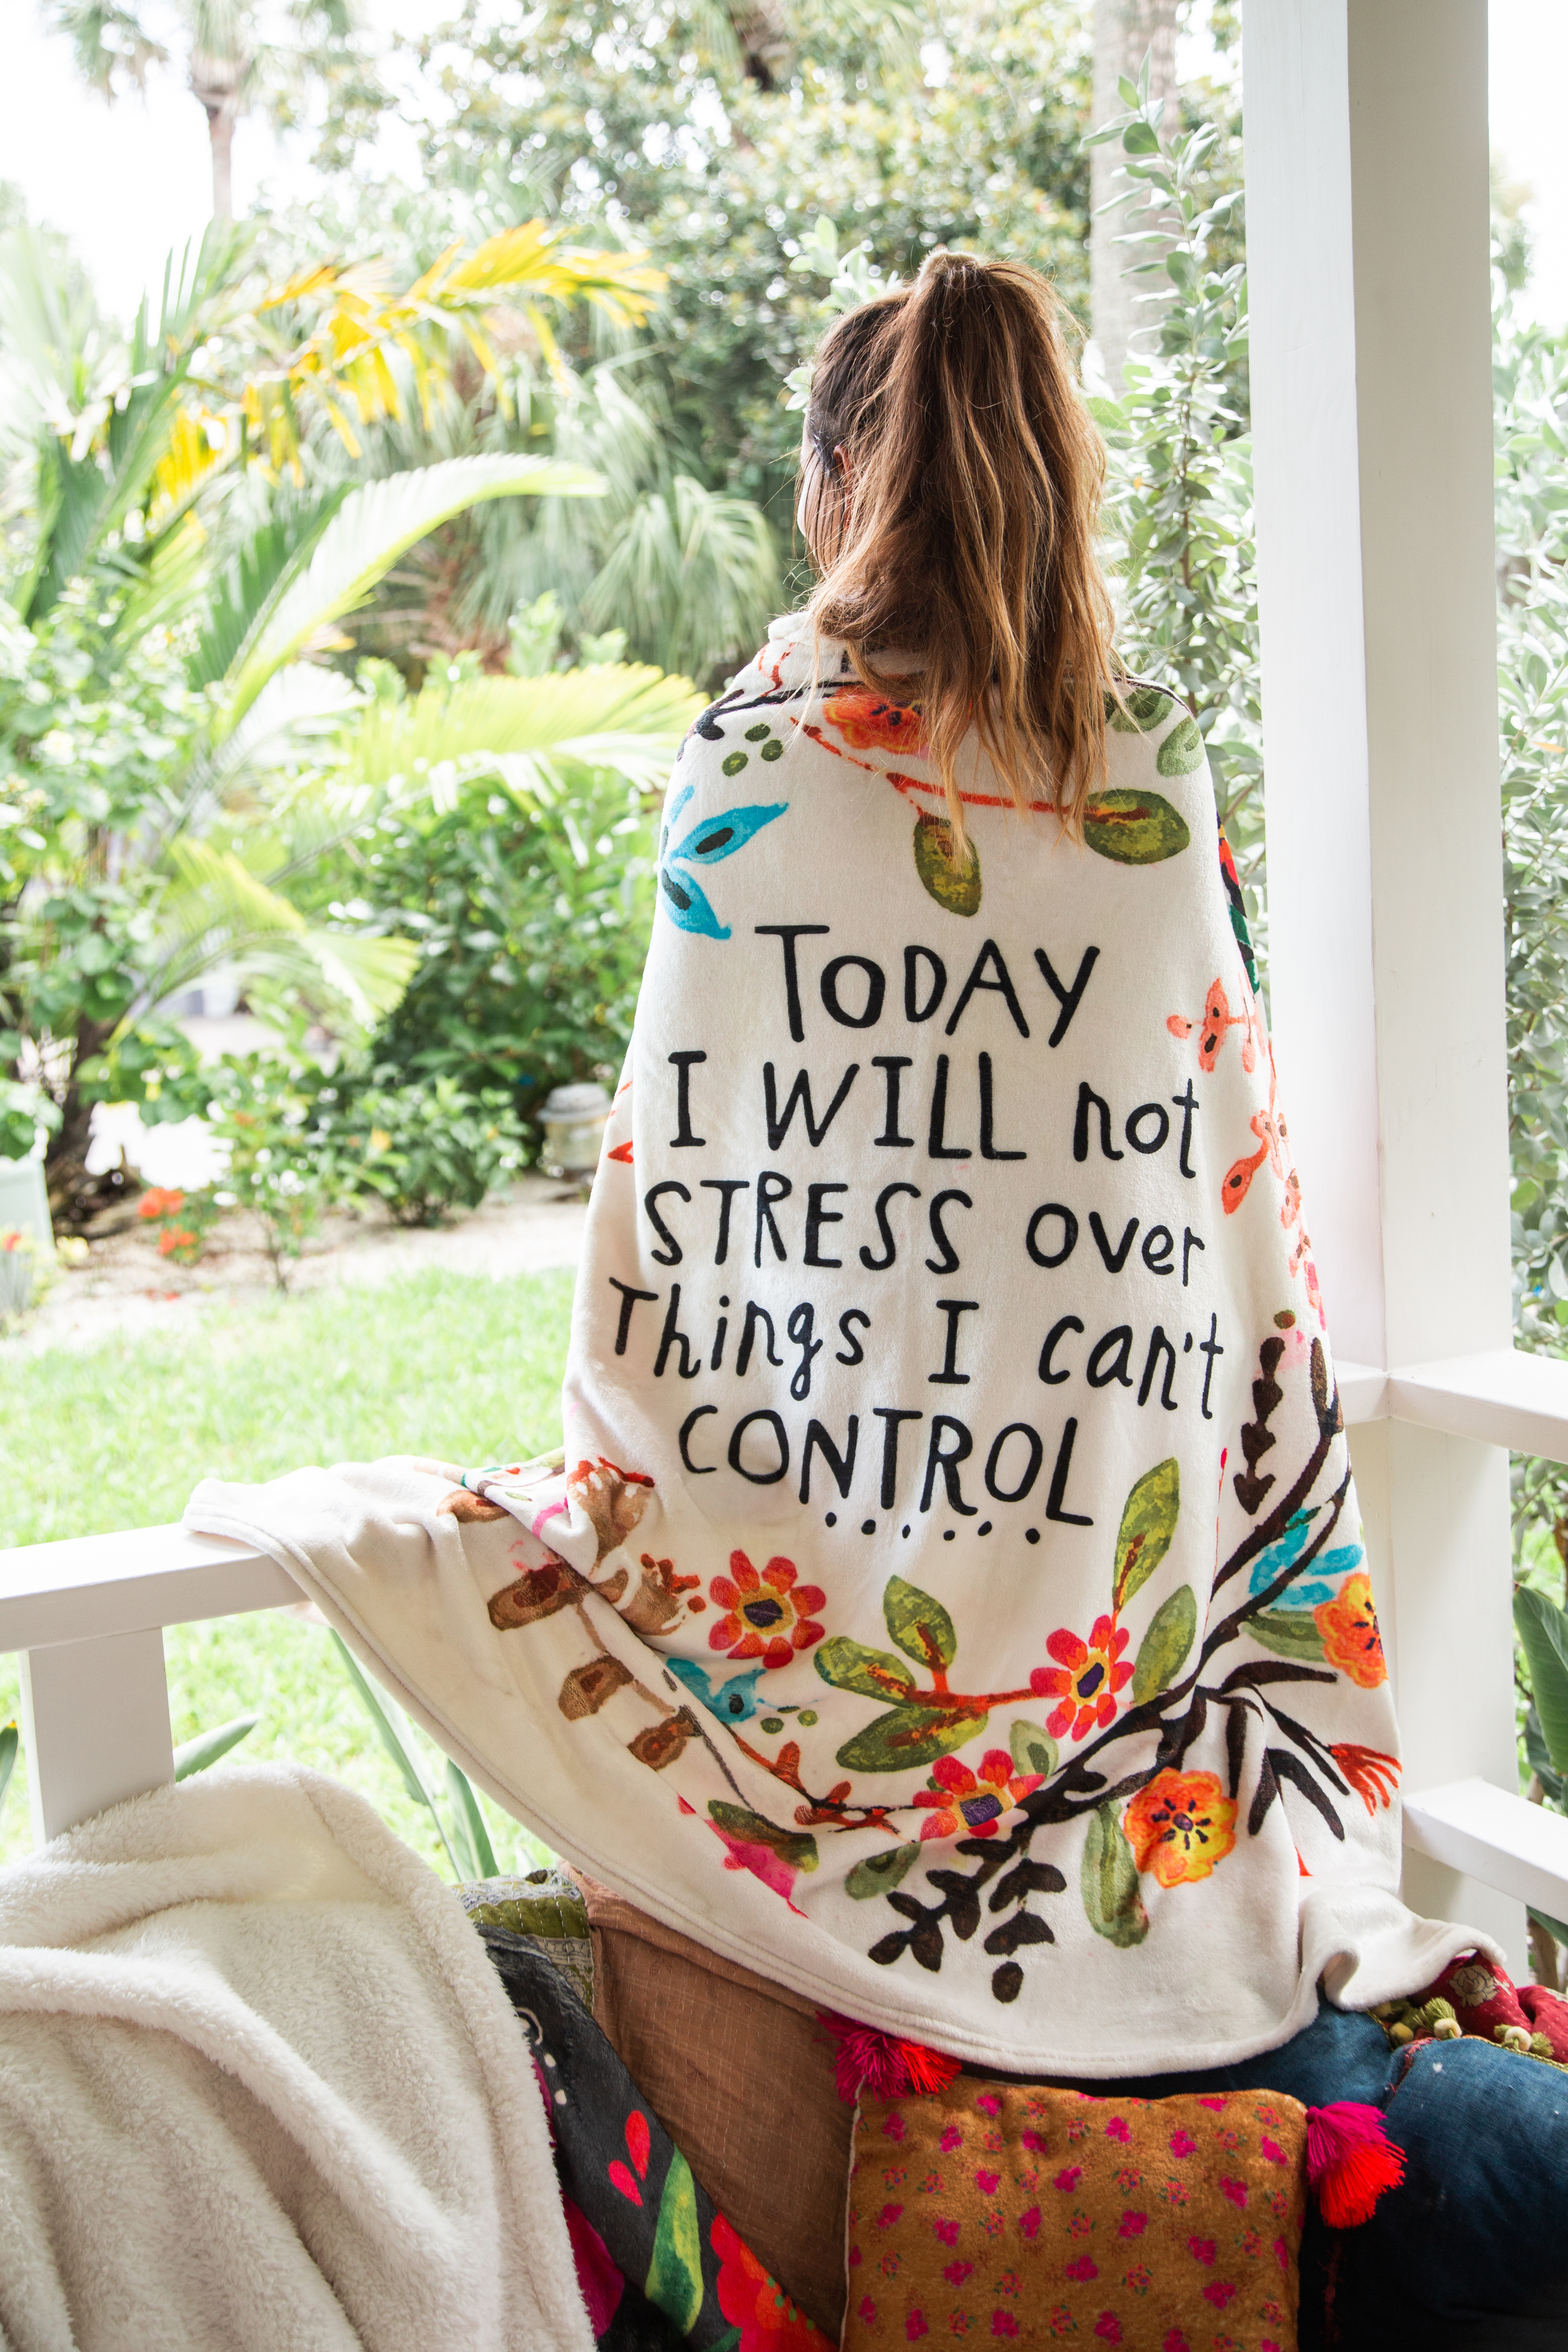 today I will not stress tapestry blanket